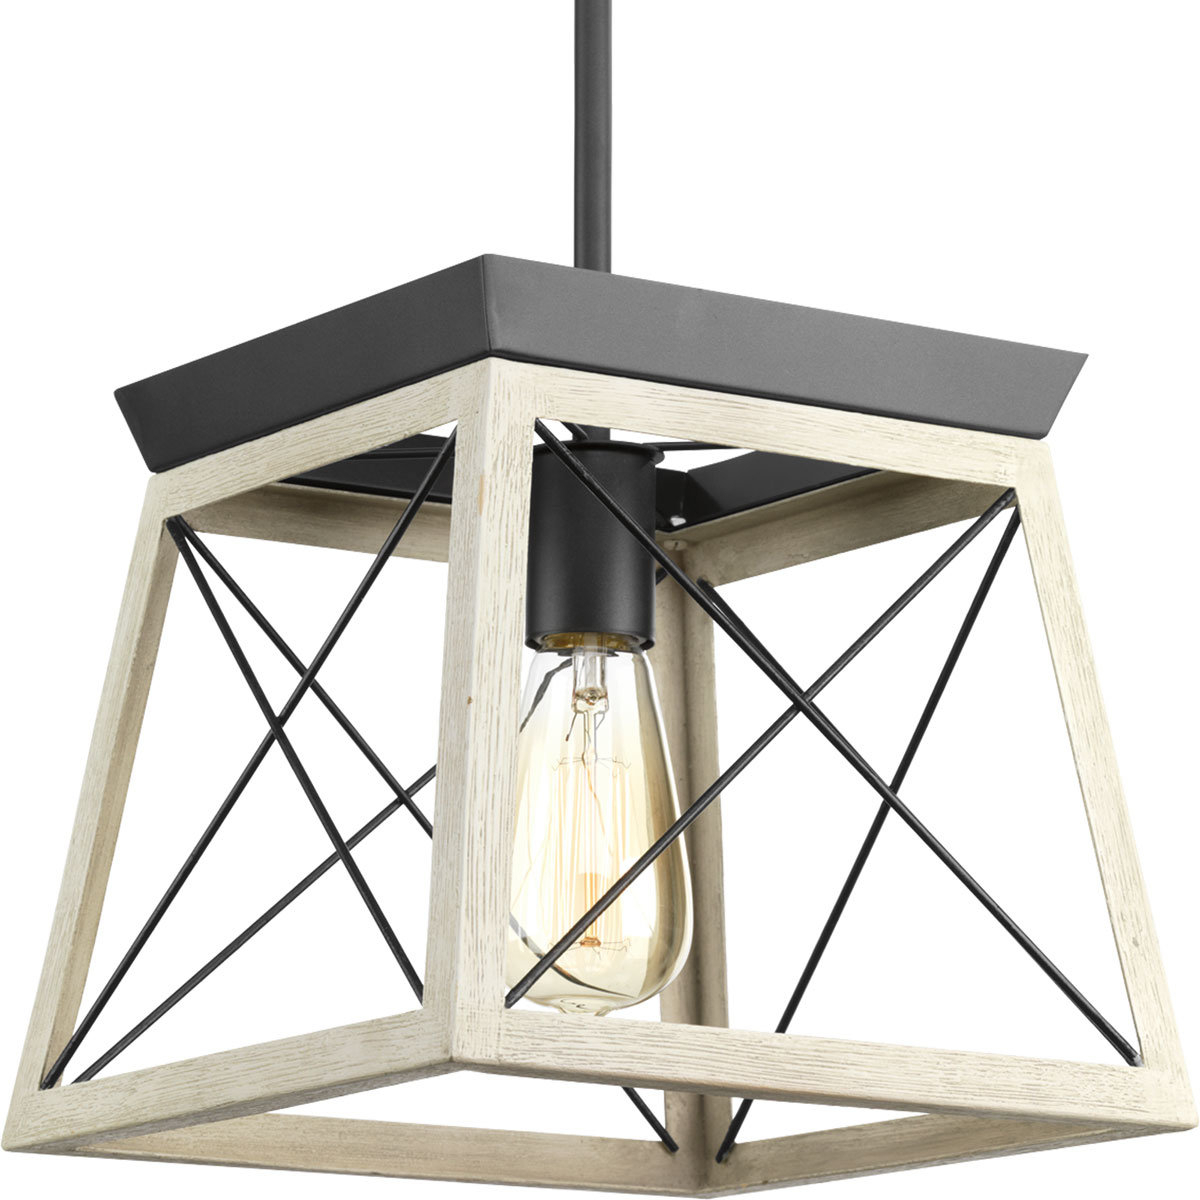 Delon 1 Light Lantern Pendant Within Delon 1 Light Lantern Geometric Pendants (Photo 5 of 30)